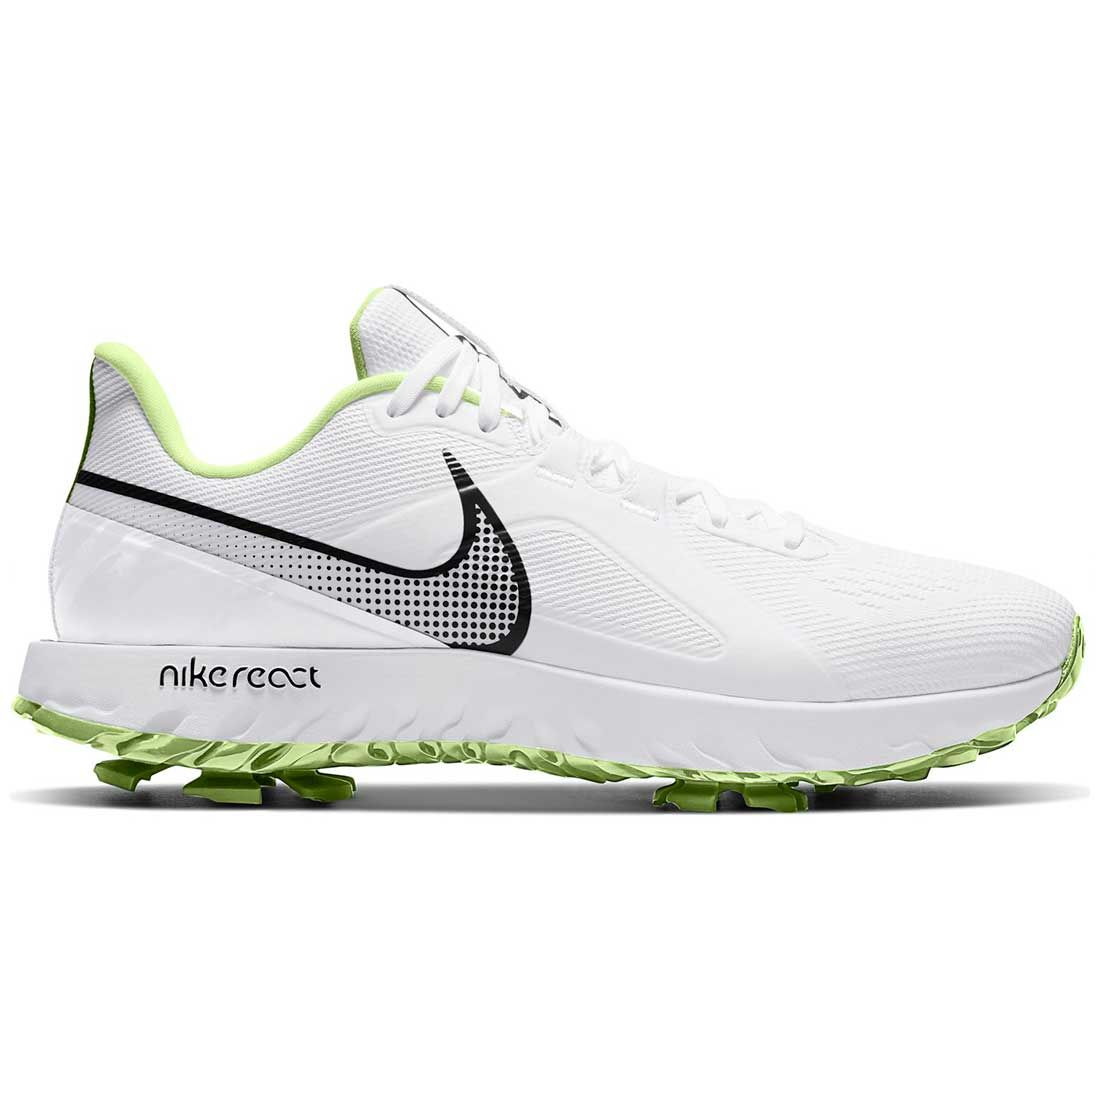 Nike React Infinity Pro Golf Shoes White/Black/Barely Volt